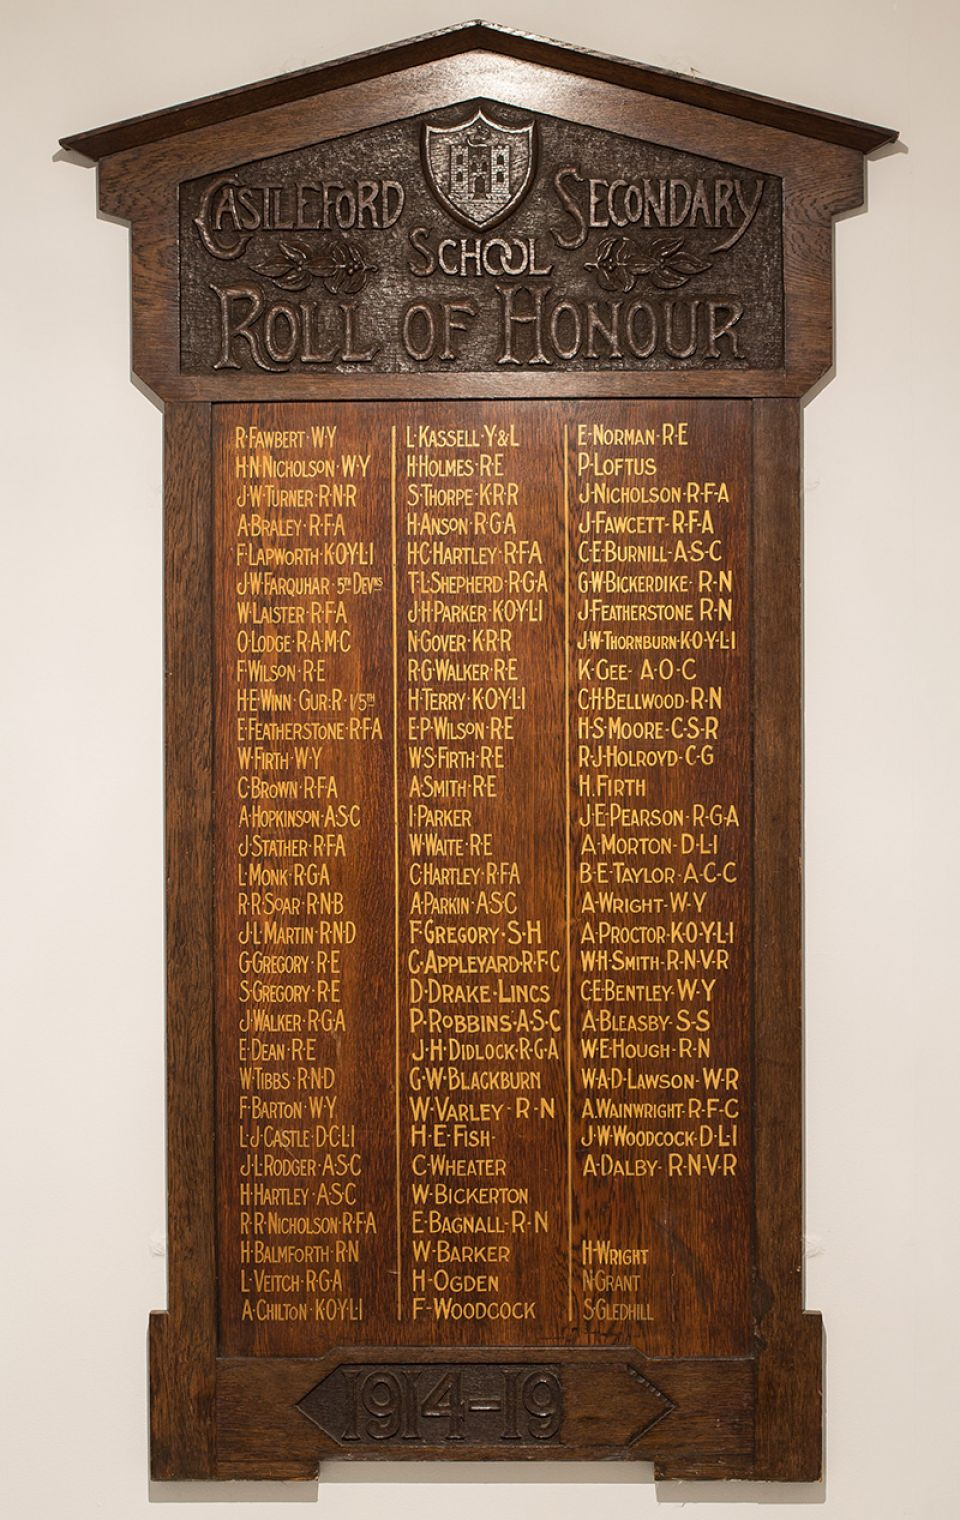 Henry Moore, Castleford Secondary School Roll of Honour c.1916